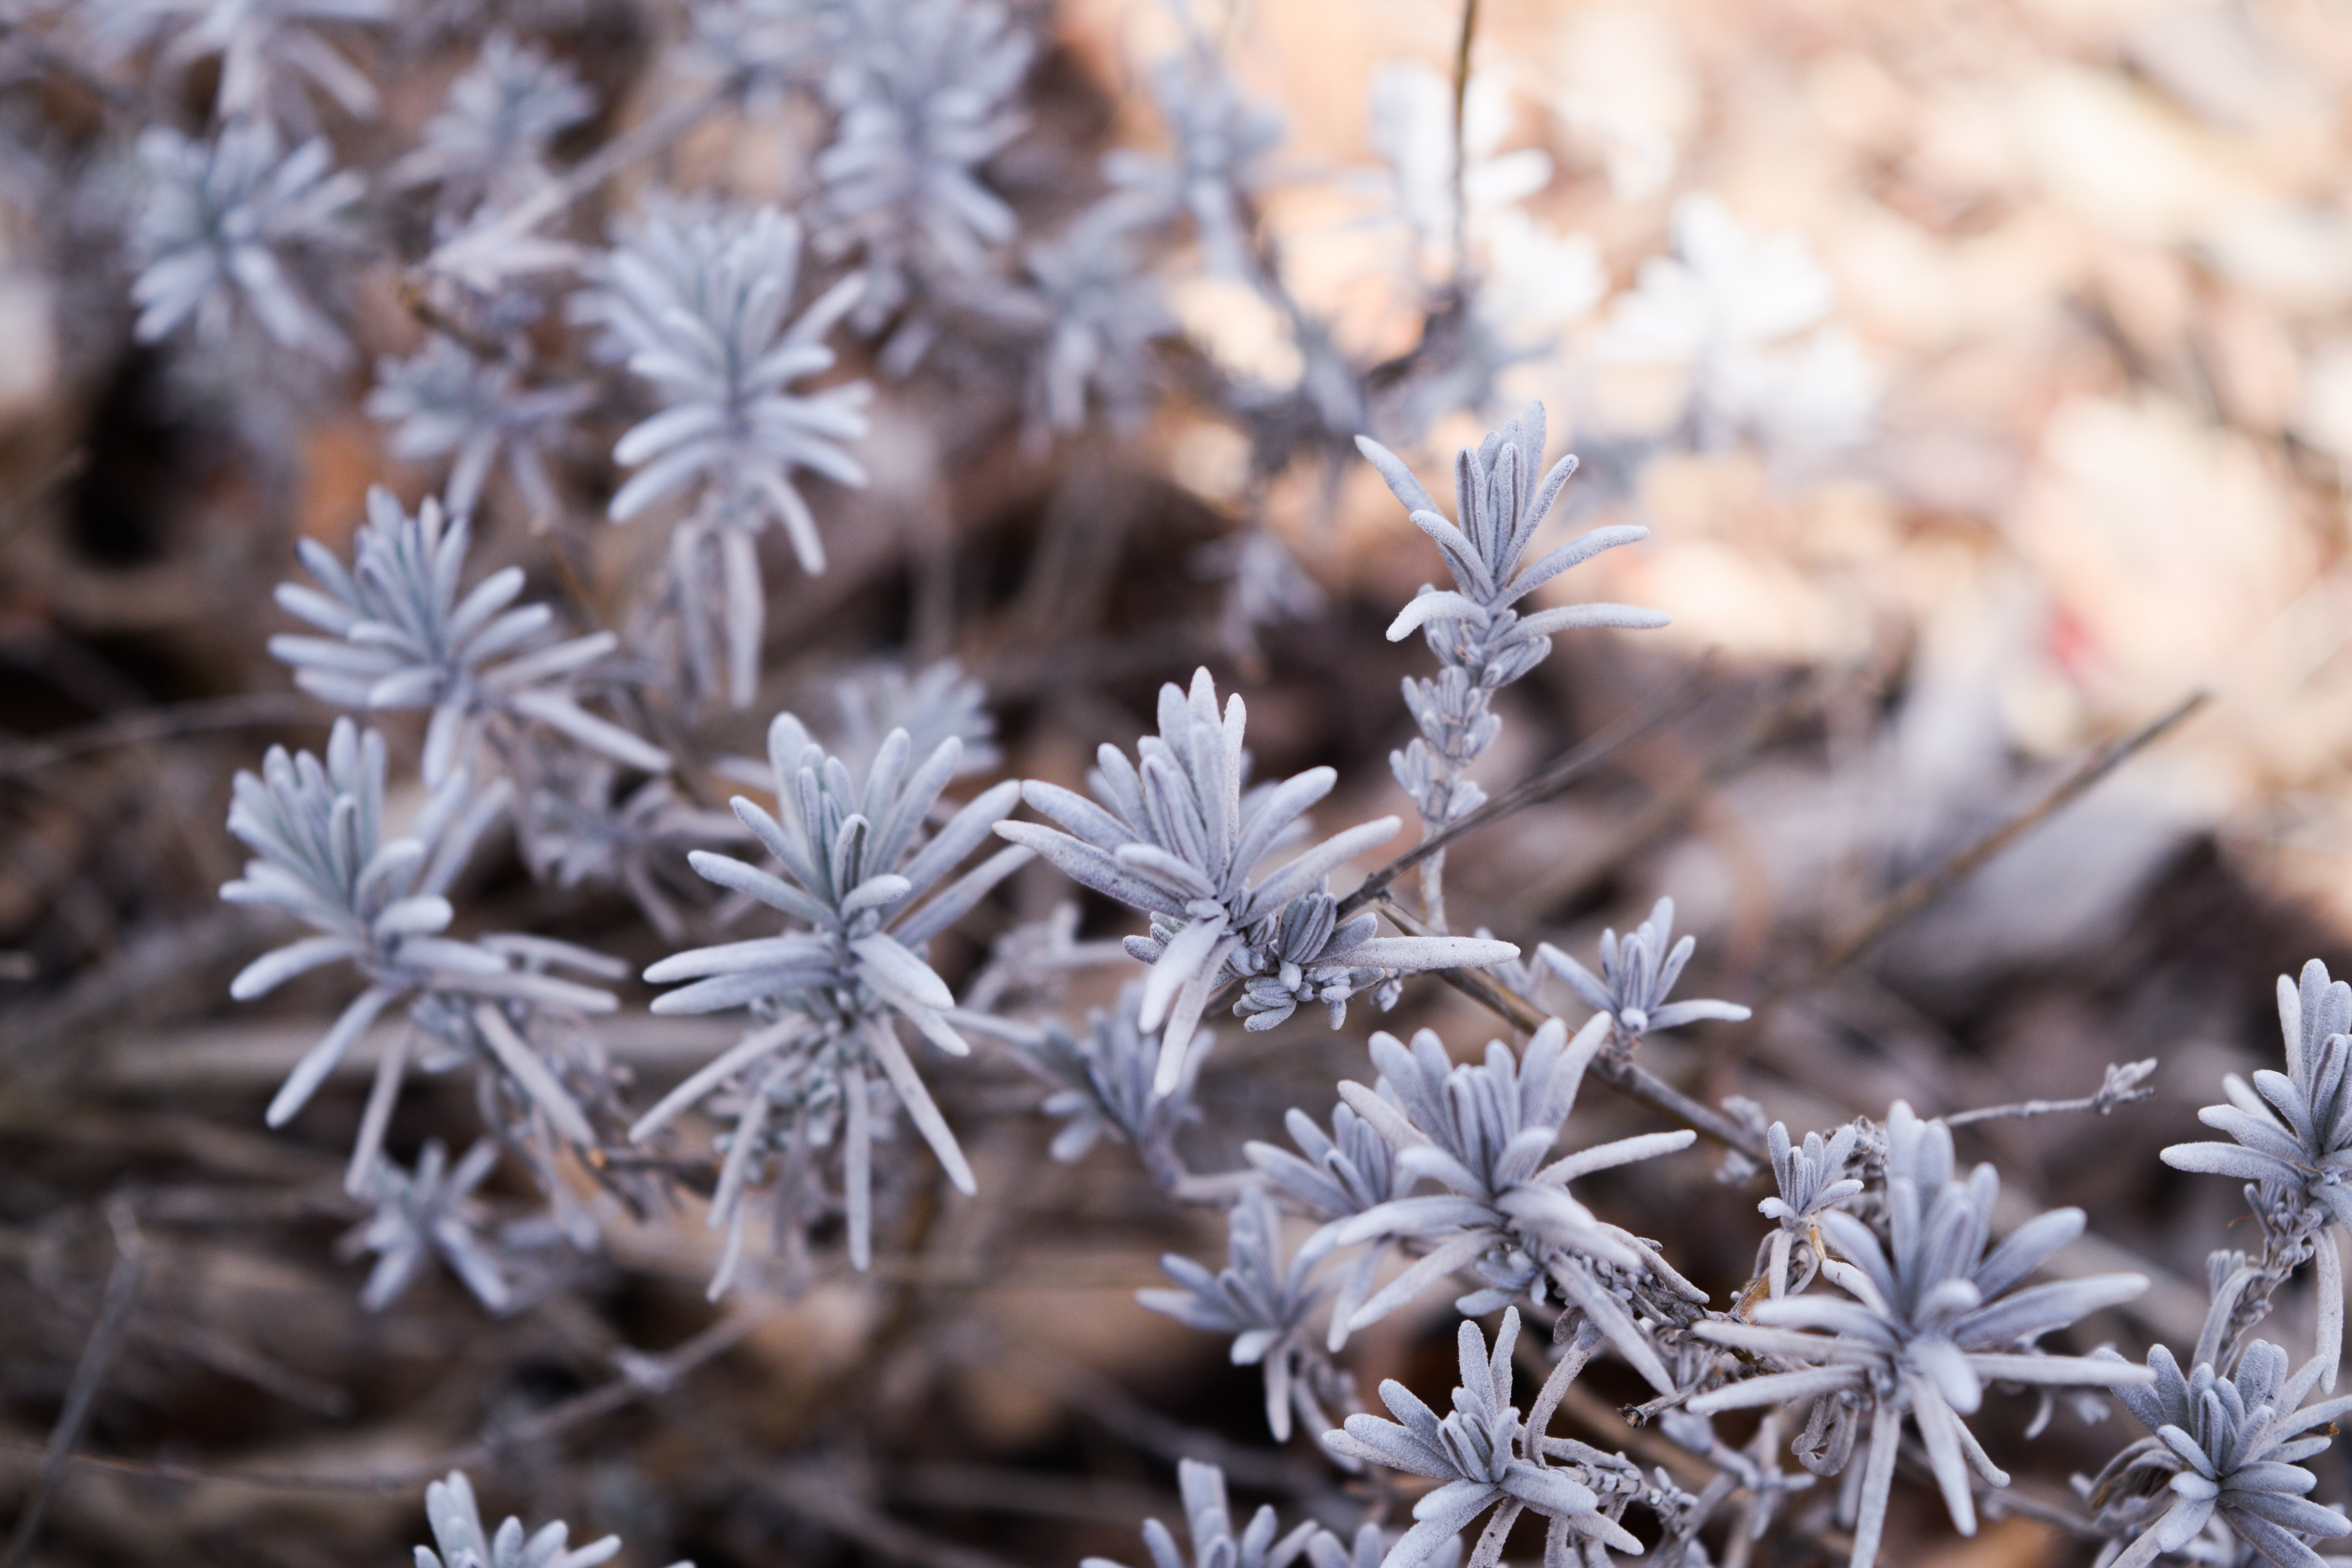 White pine leaves on a winter plant